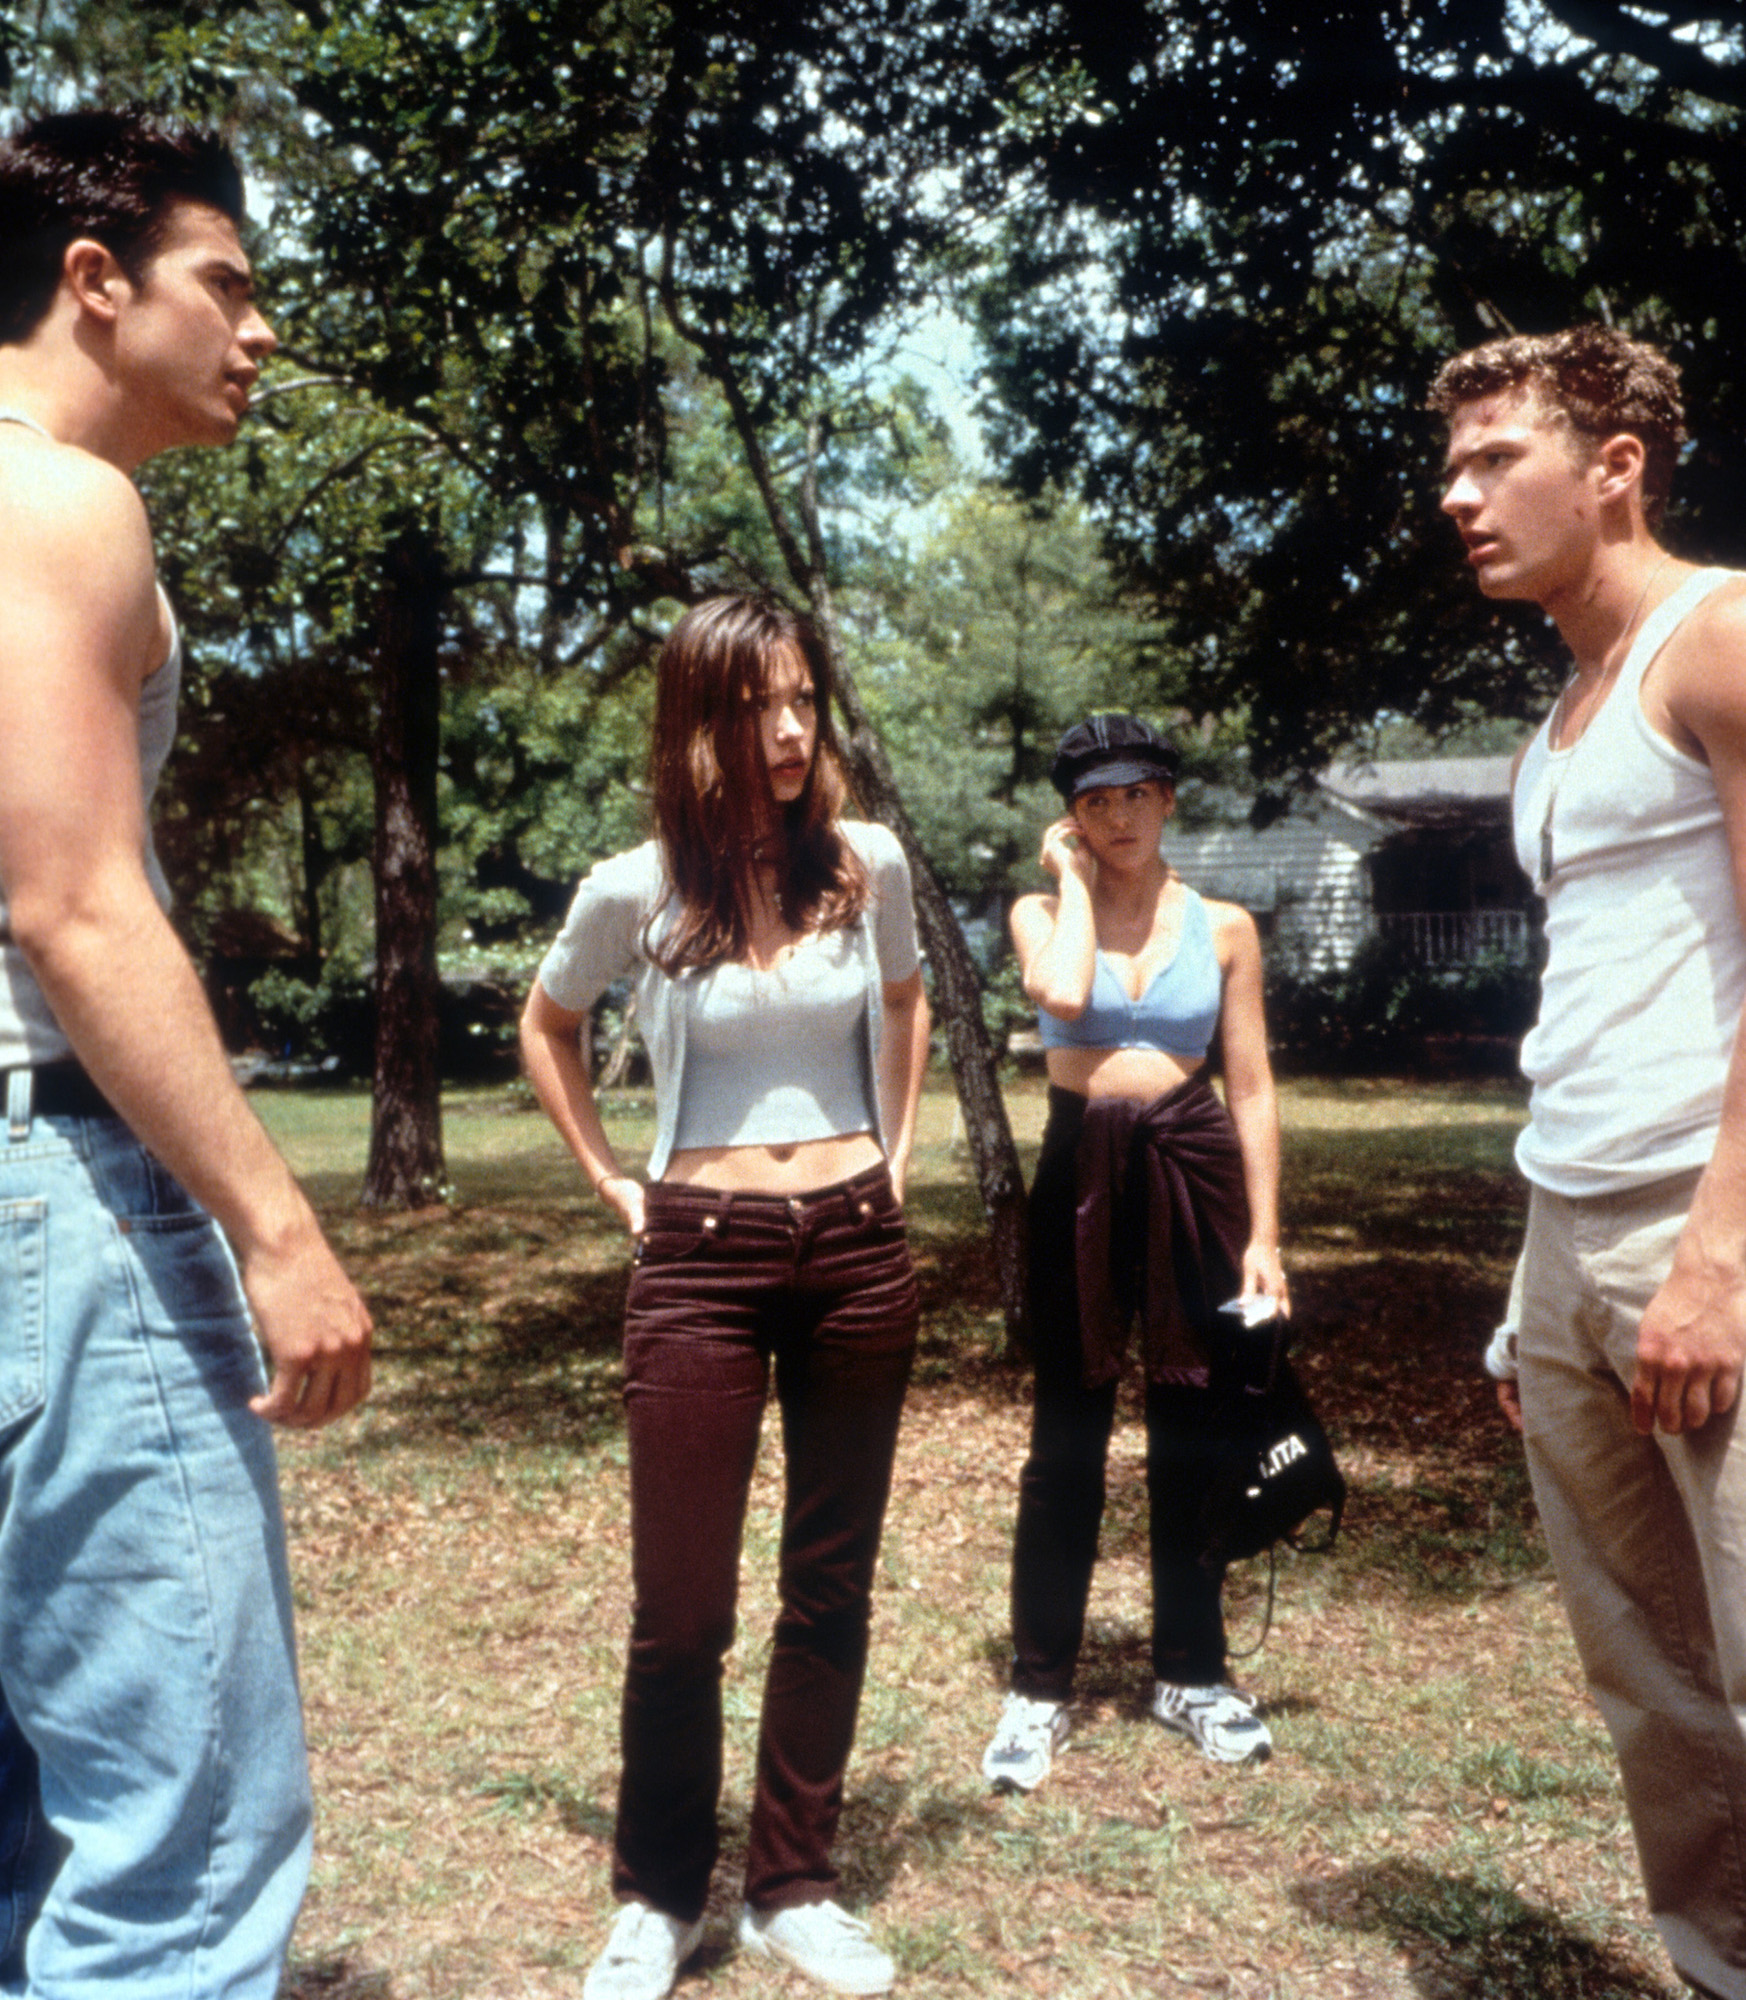 Freddie Prinze Jr having a confrontation Ryan Phillippe's character as Jennifer Love Hewitt and Sarah Michelle Gellar watches on in 'I Know What You Did Last Summer', 1997